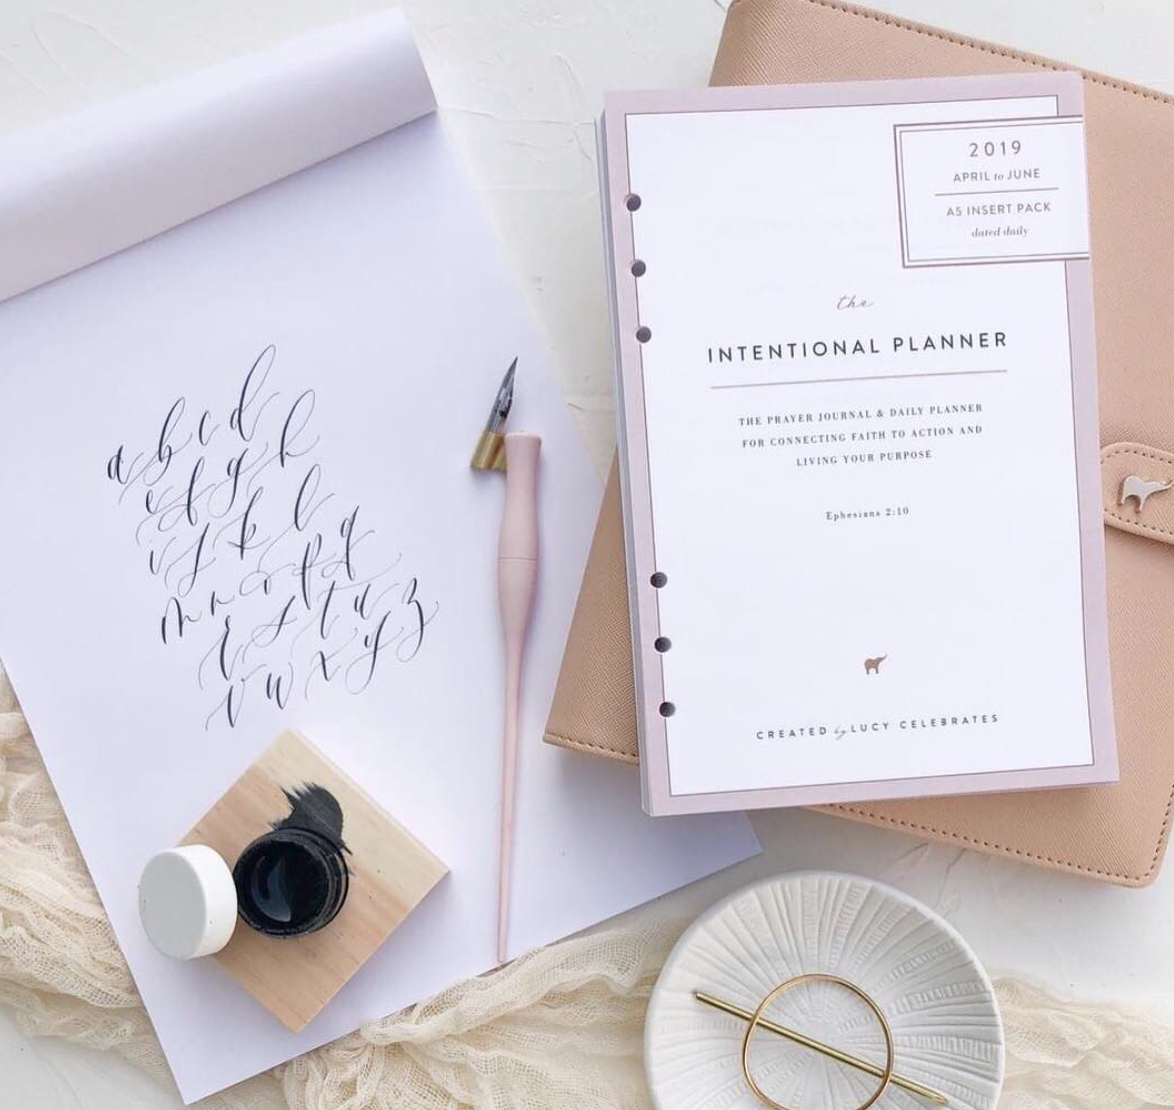 Liked but no longer using: Lucy Celebrates 'Intentional Planner' Inserts - These inserts are great, but the two-day-per-page layout was just too much for me to keep up with and is unnecessary given the fact that I already journal and record my gratitude in separate systems. (Photo Credit: @lucycelebrates 2019)